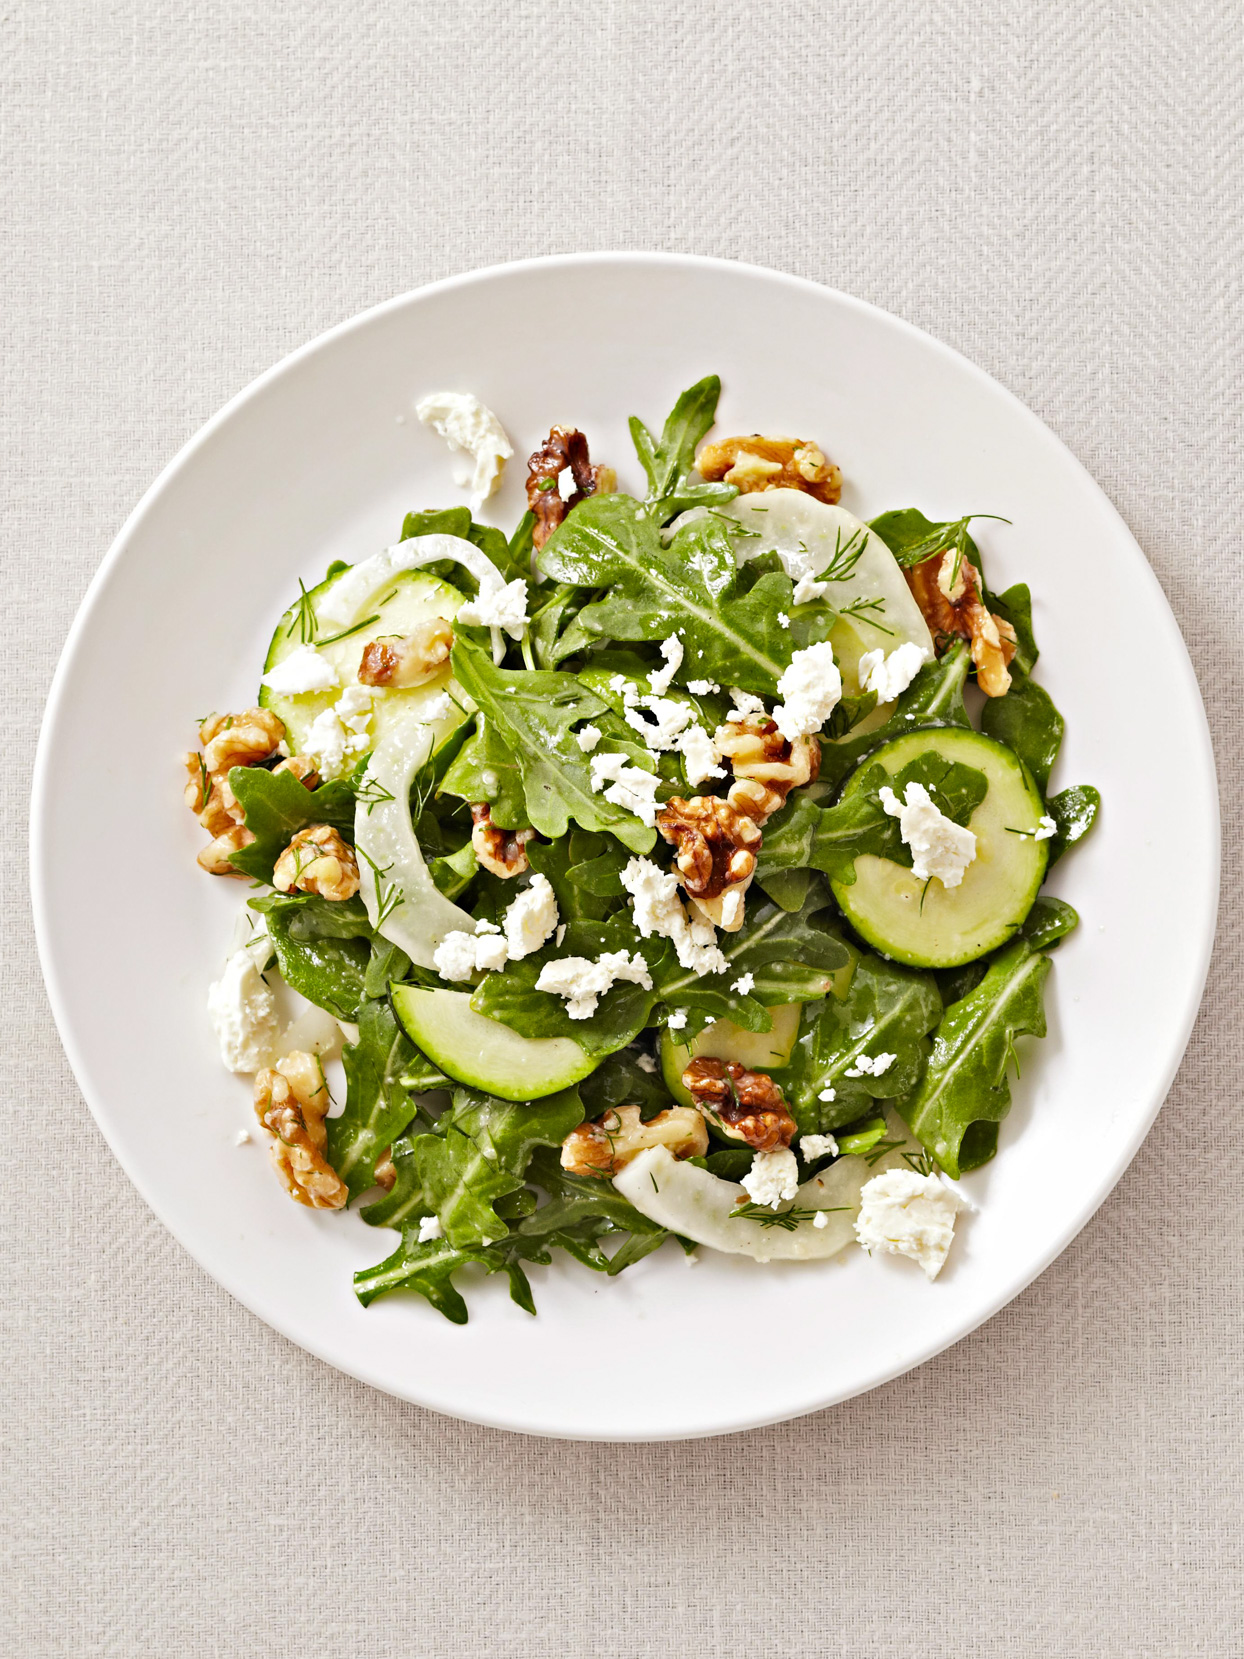 Shaved Fennel Salad with Dill, Arugula, and Walnuts